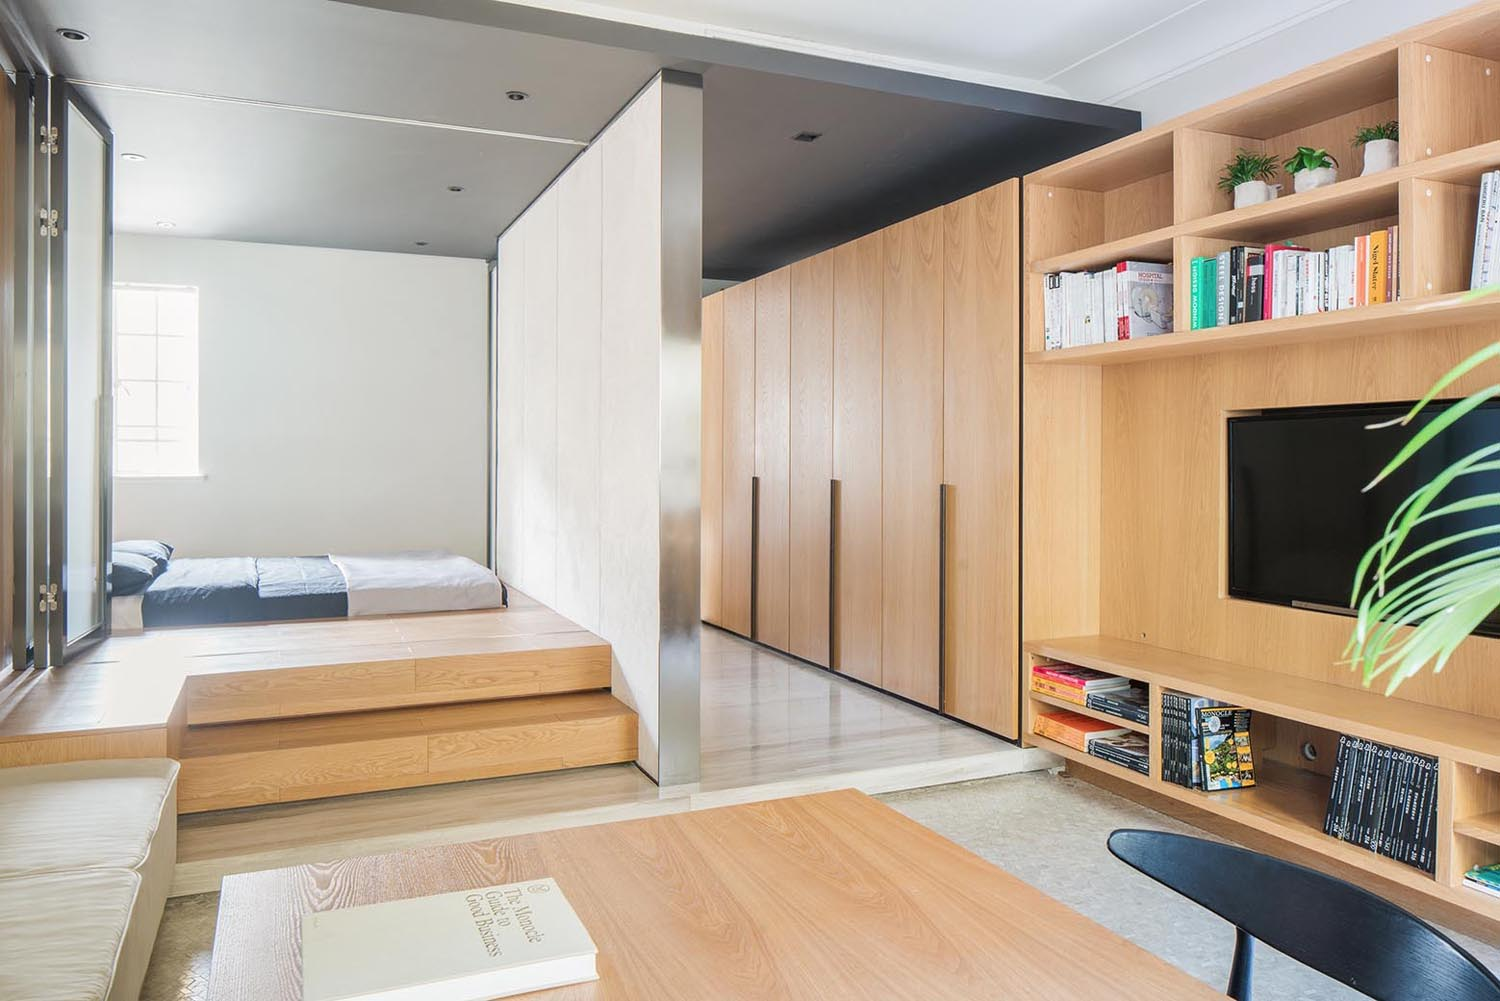 Micro Living Apartment Tiny Apartment With Functional Design That Feels Open Yet